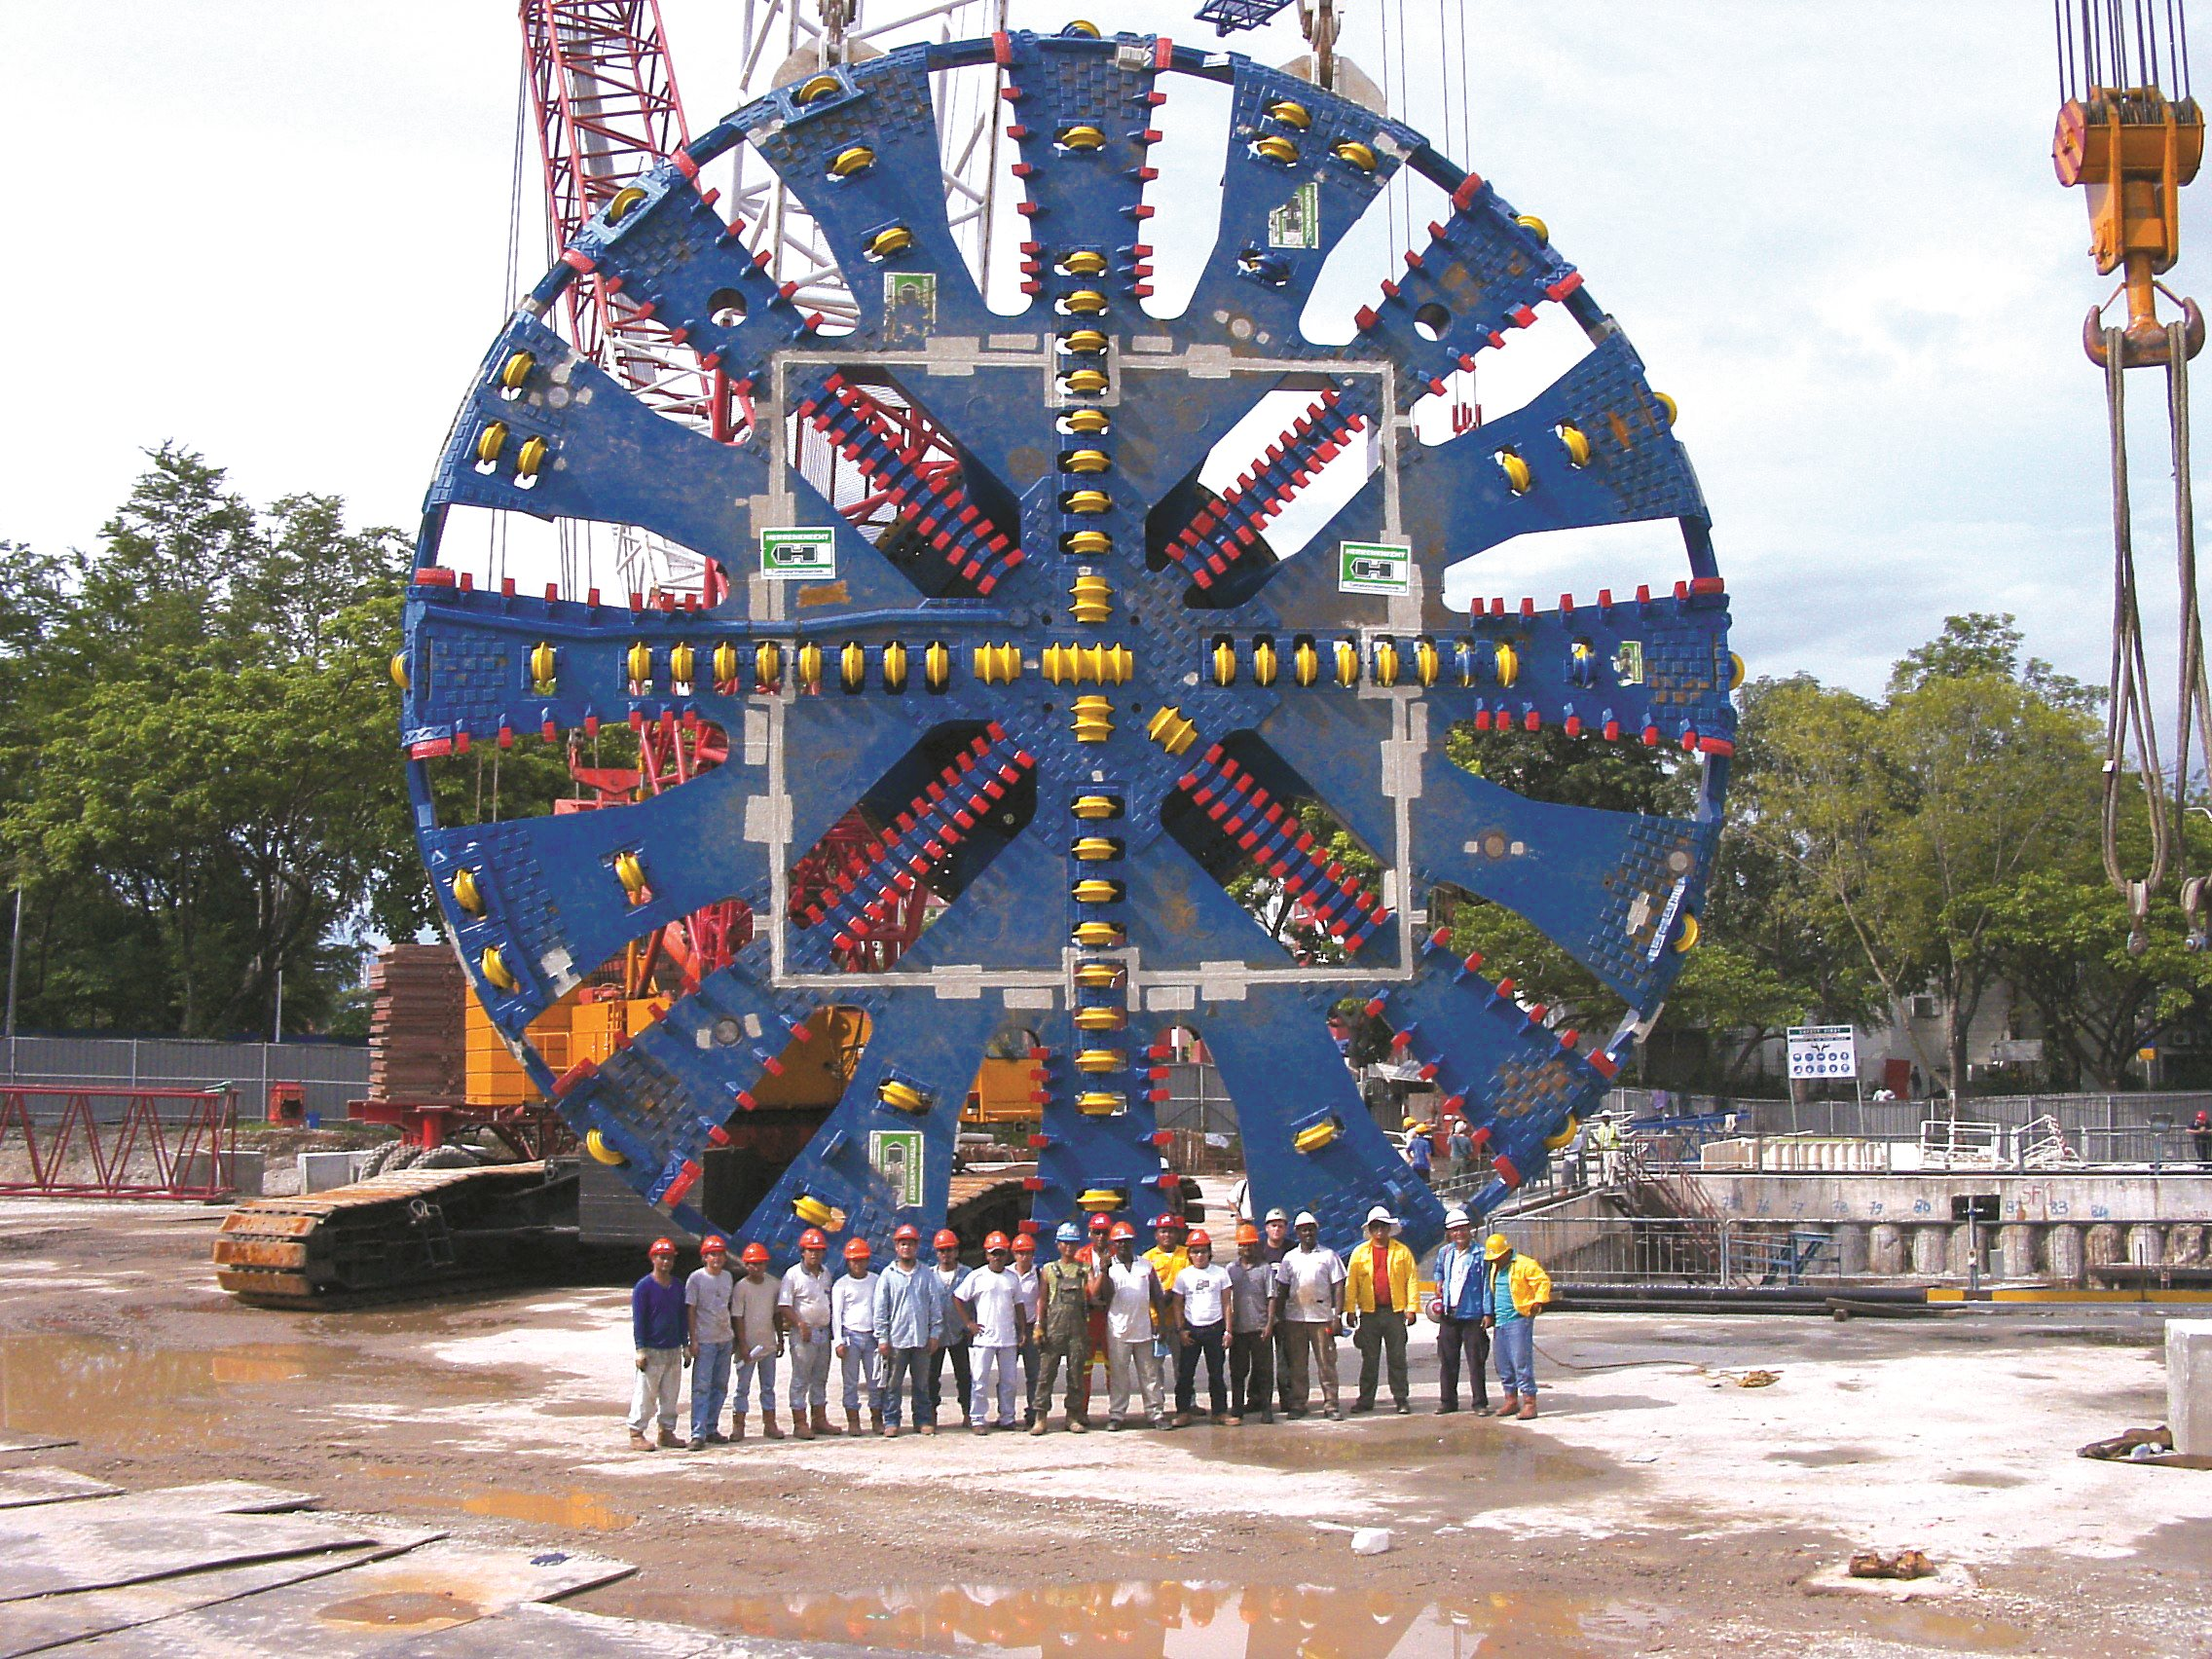 shot of giant tunnel boring machine dwarfing workers standing in front of it